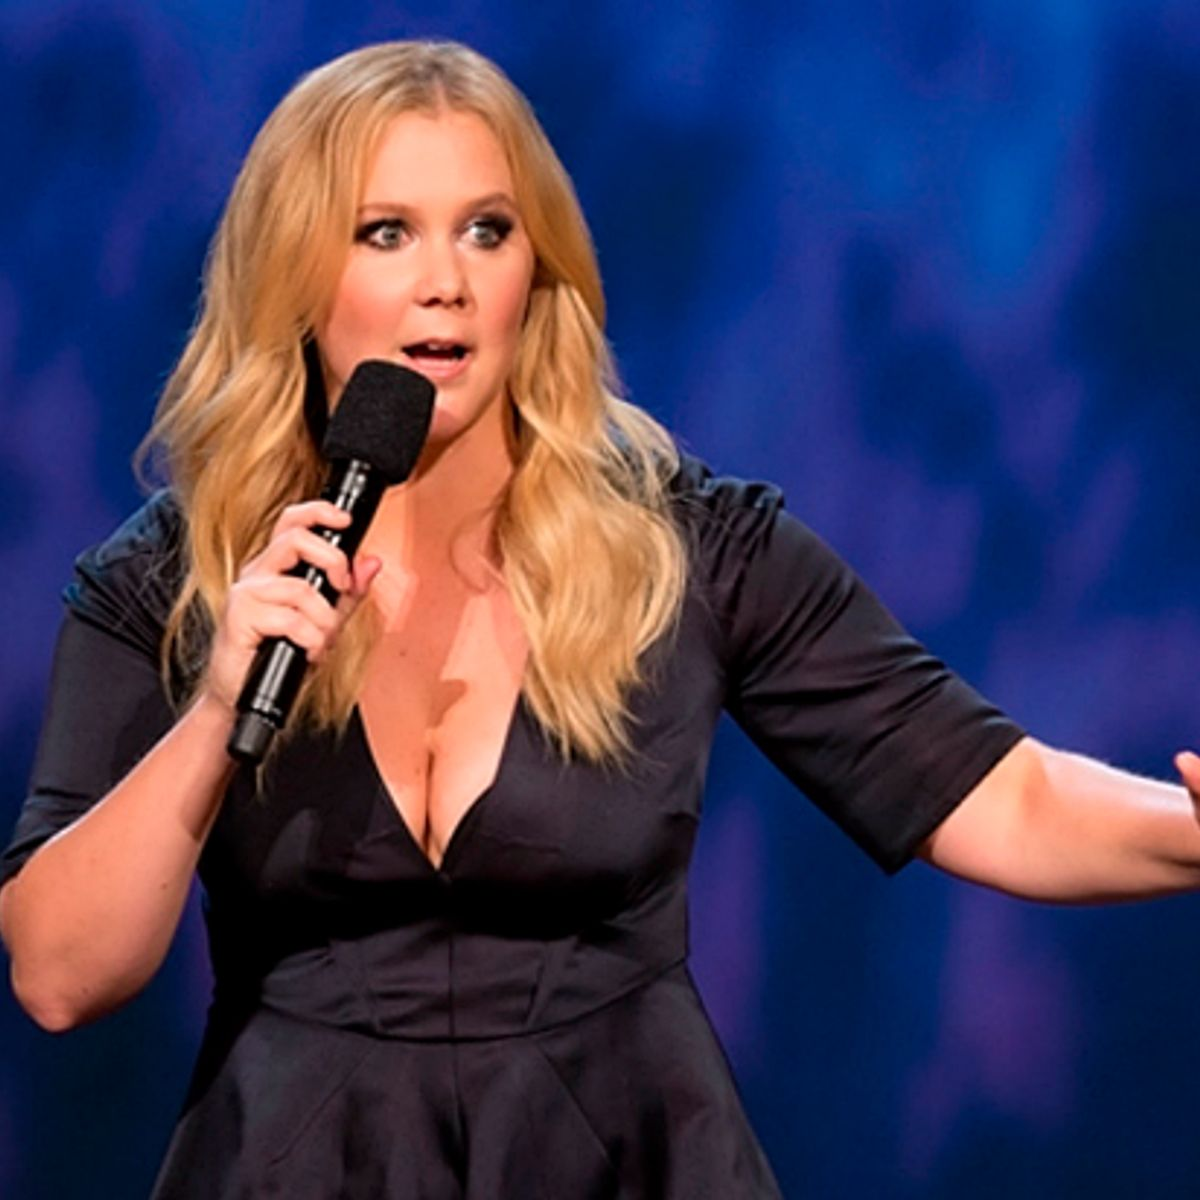 Amy Schumer Tit Pics amy schumer nails sex, body image and hollywood's double